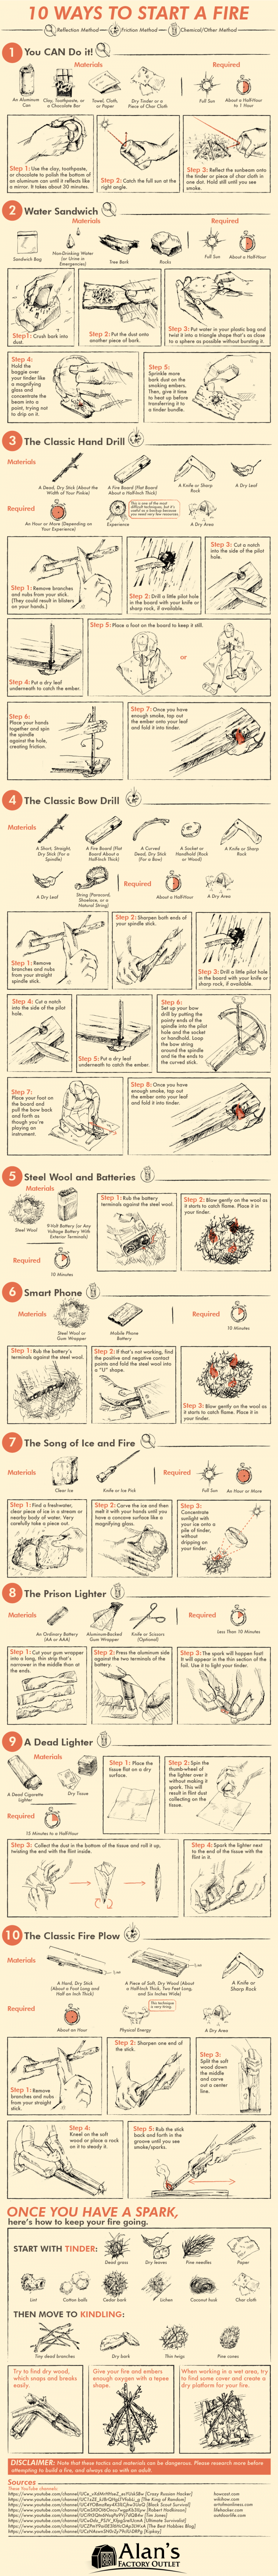 10 Ways To Start a Fire